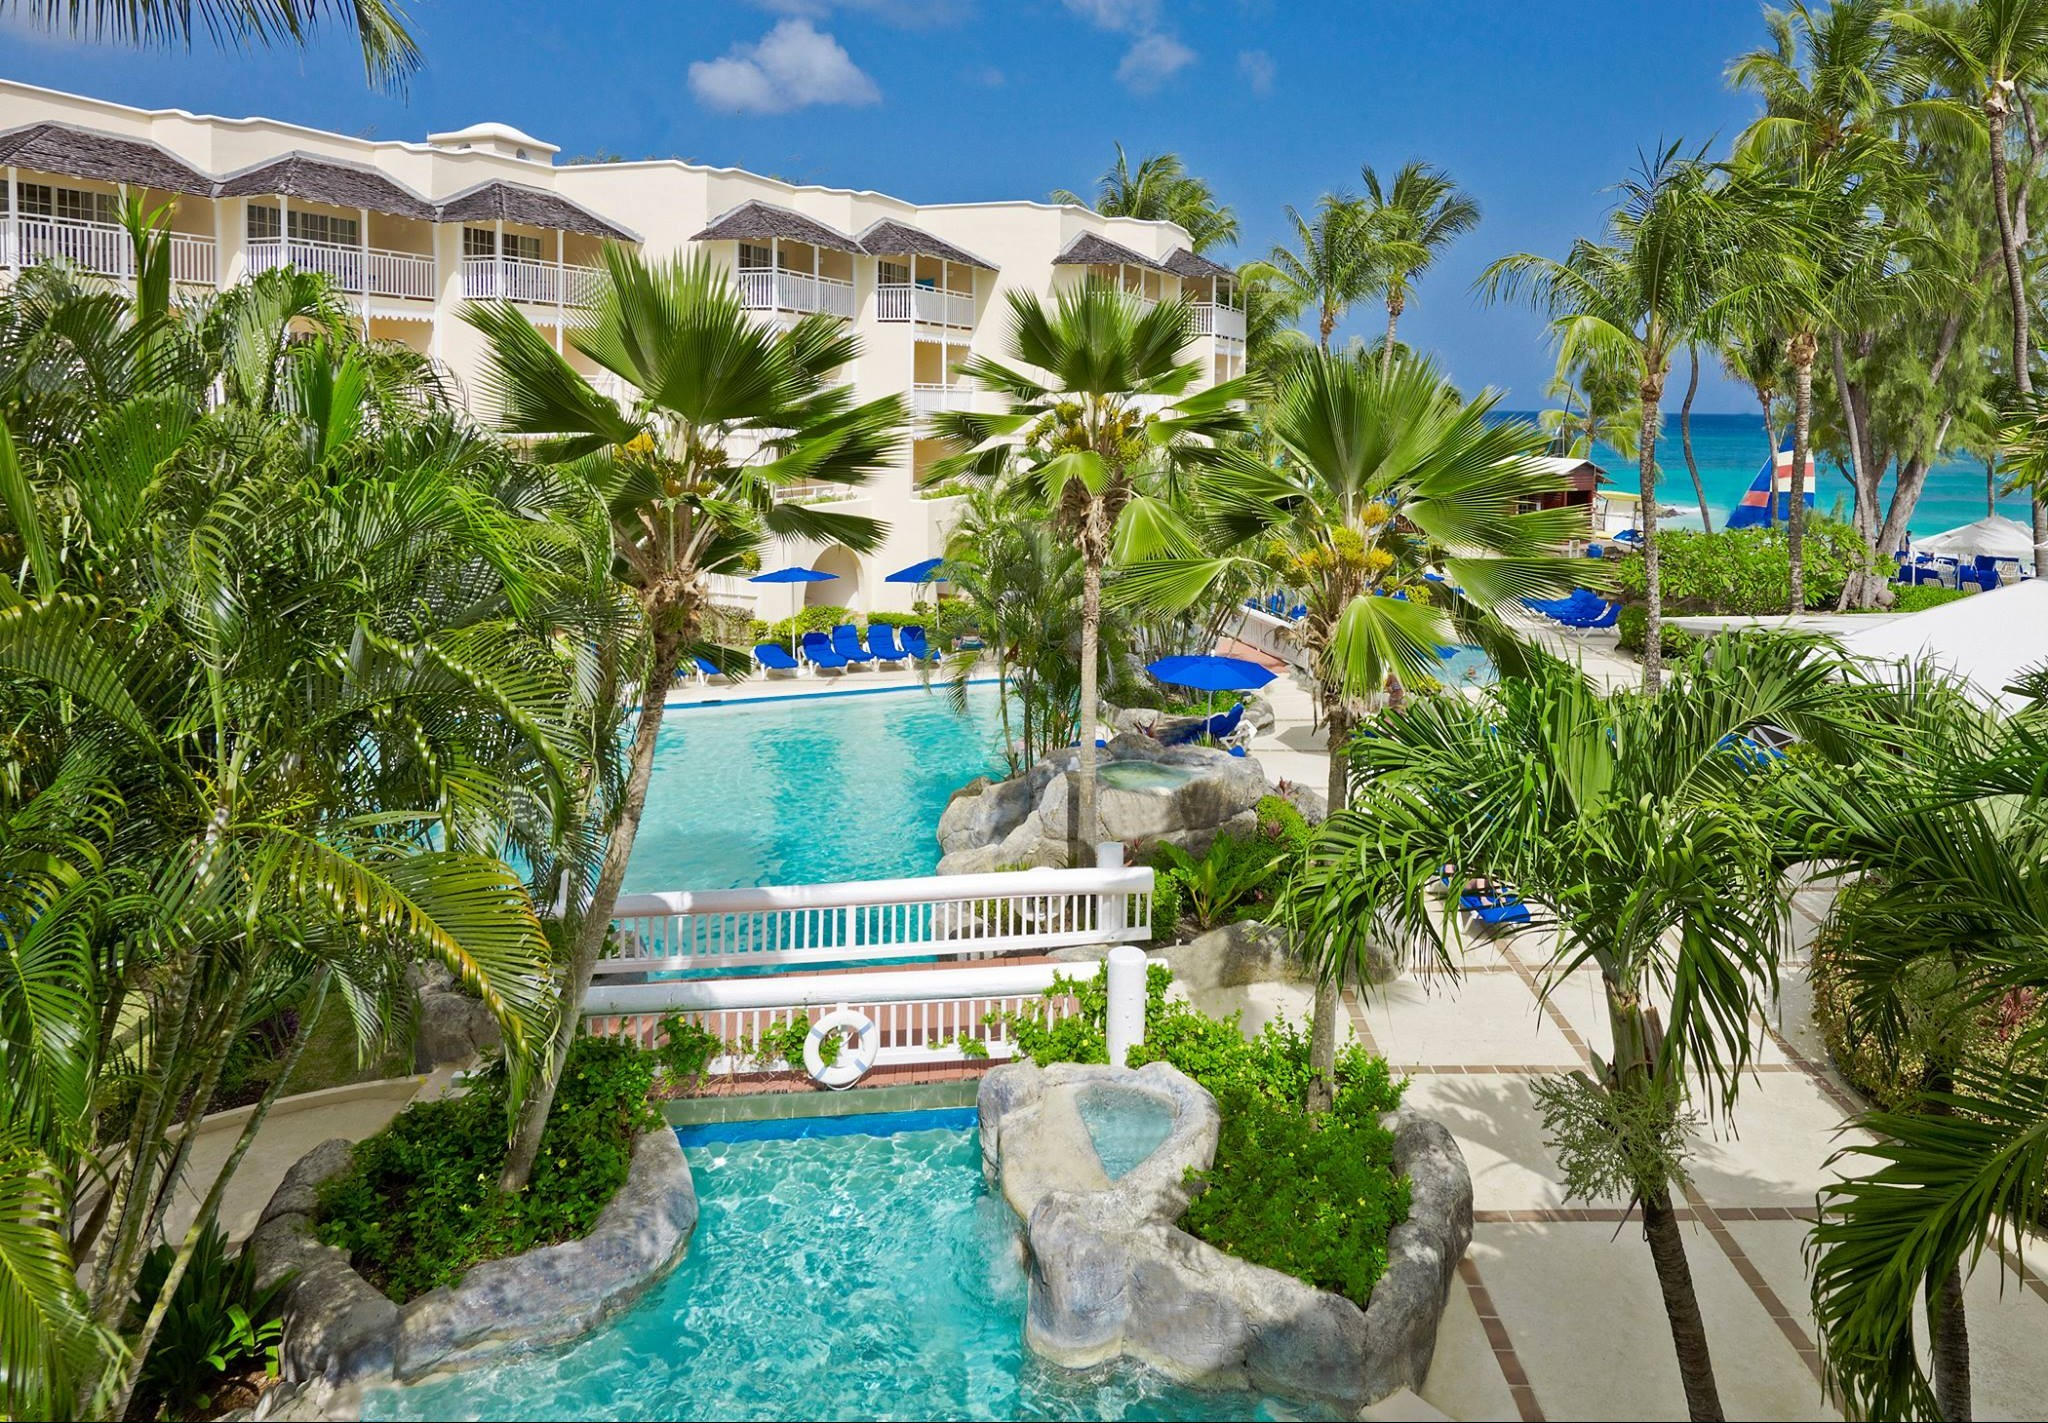 Turtle Beach Resort Barbados Reviews – 4 Star All Inclusive